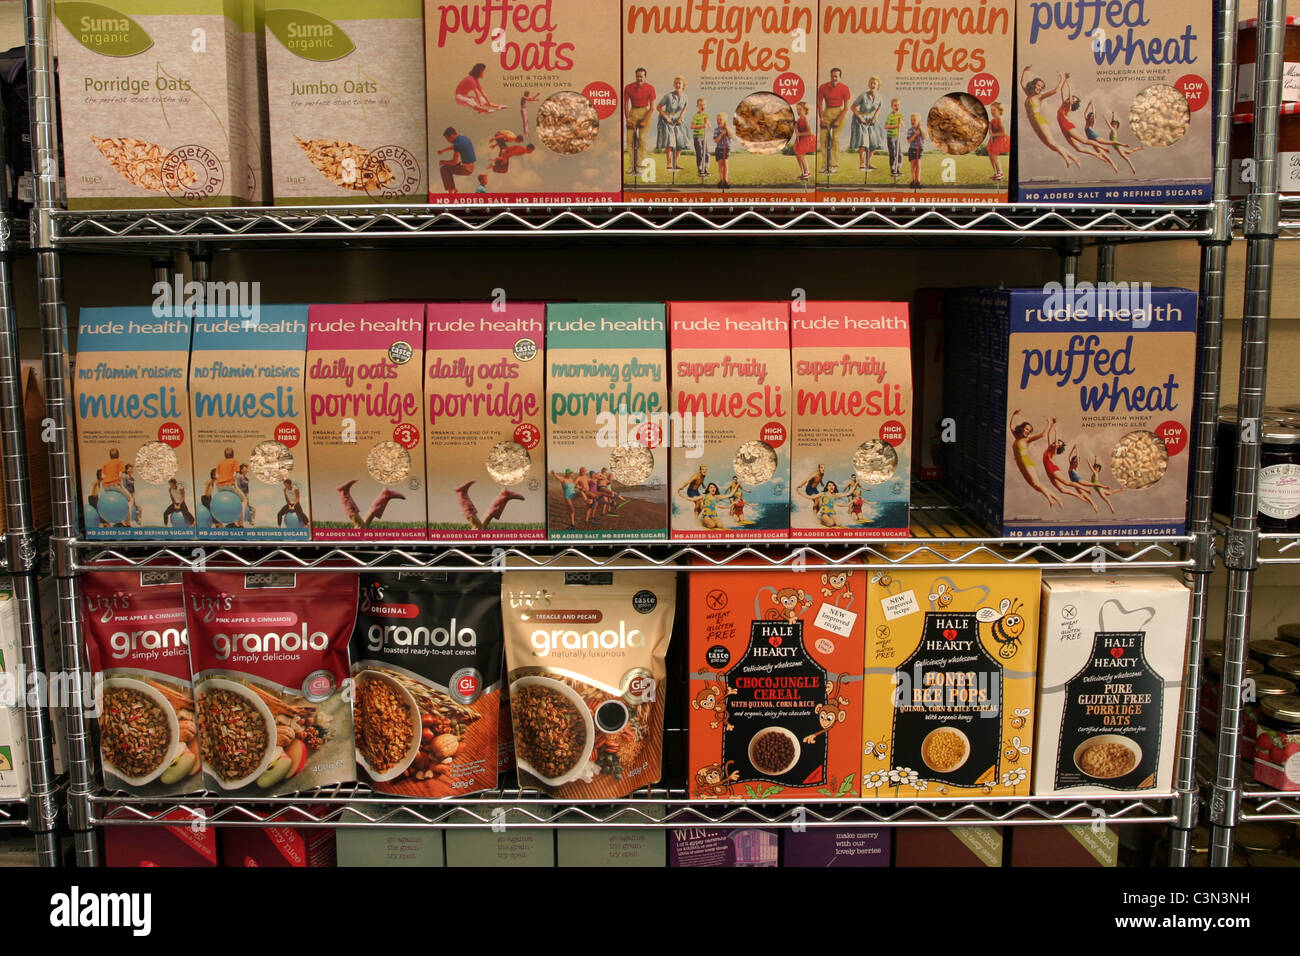 Cereal Display - Stock Image